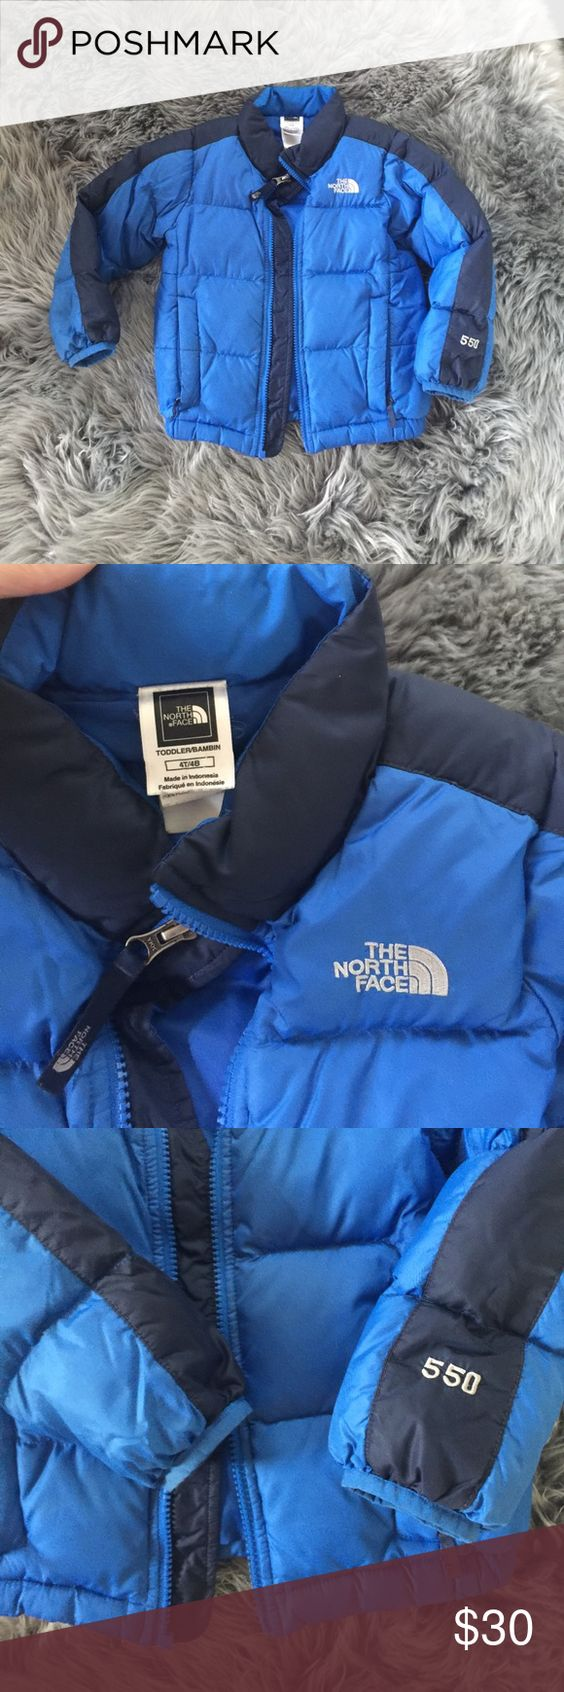 The North Face 550 Aconcagua Fill Down Jacket Very Warm North Face 550 Down Puffer Jacket For Boys Size 4t All Zippers W Down Jacket North Face Jacket Jackets [ 1692 x 564 Pixel ]